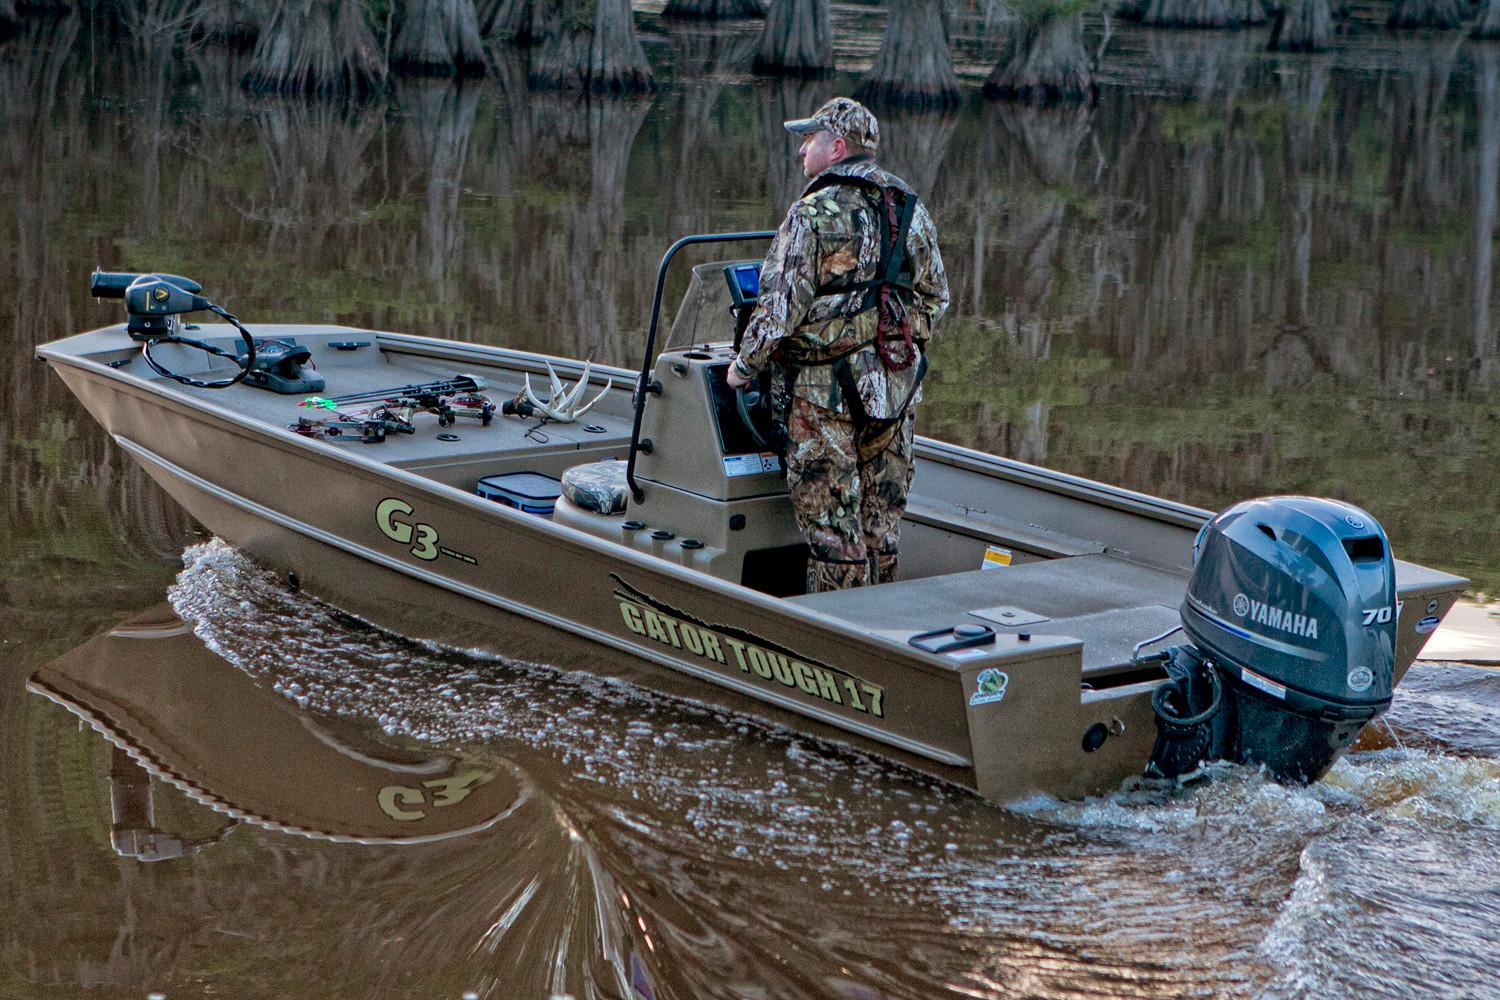 2019 G3 Gator Tough 17 CC in West Monroe, Louisiana - Photo 1